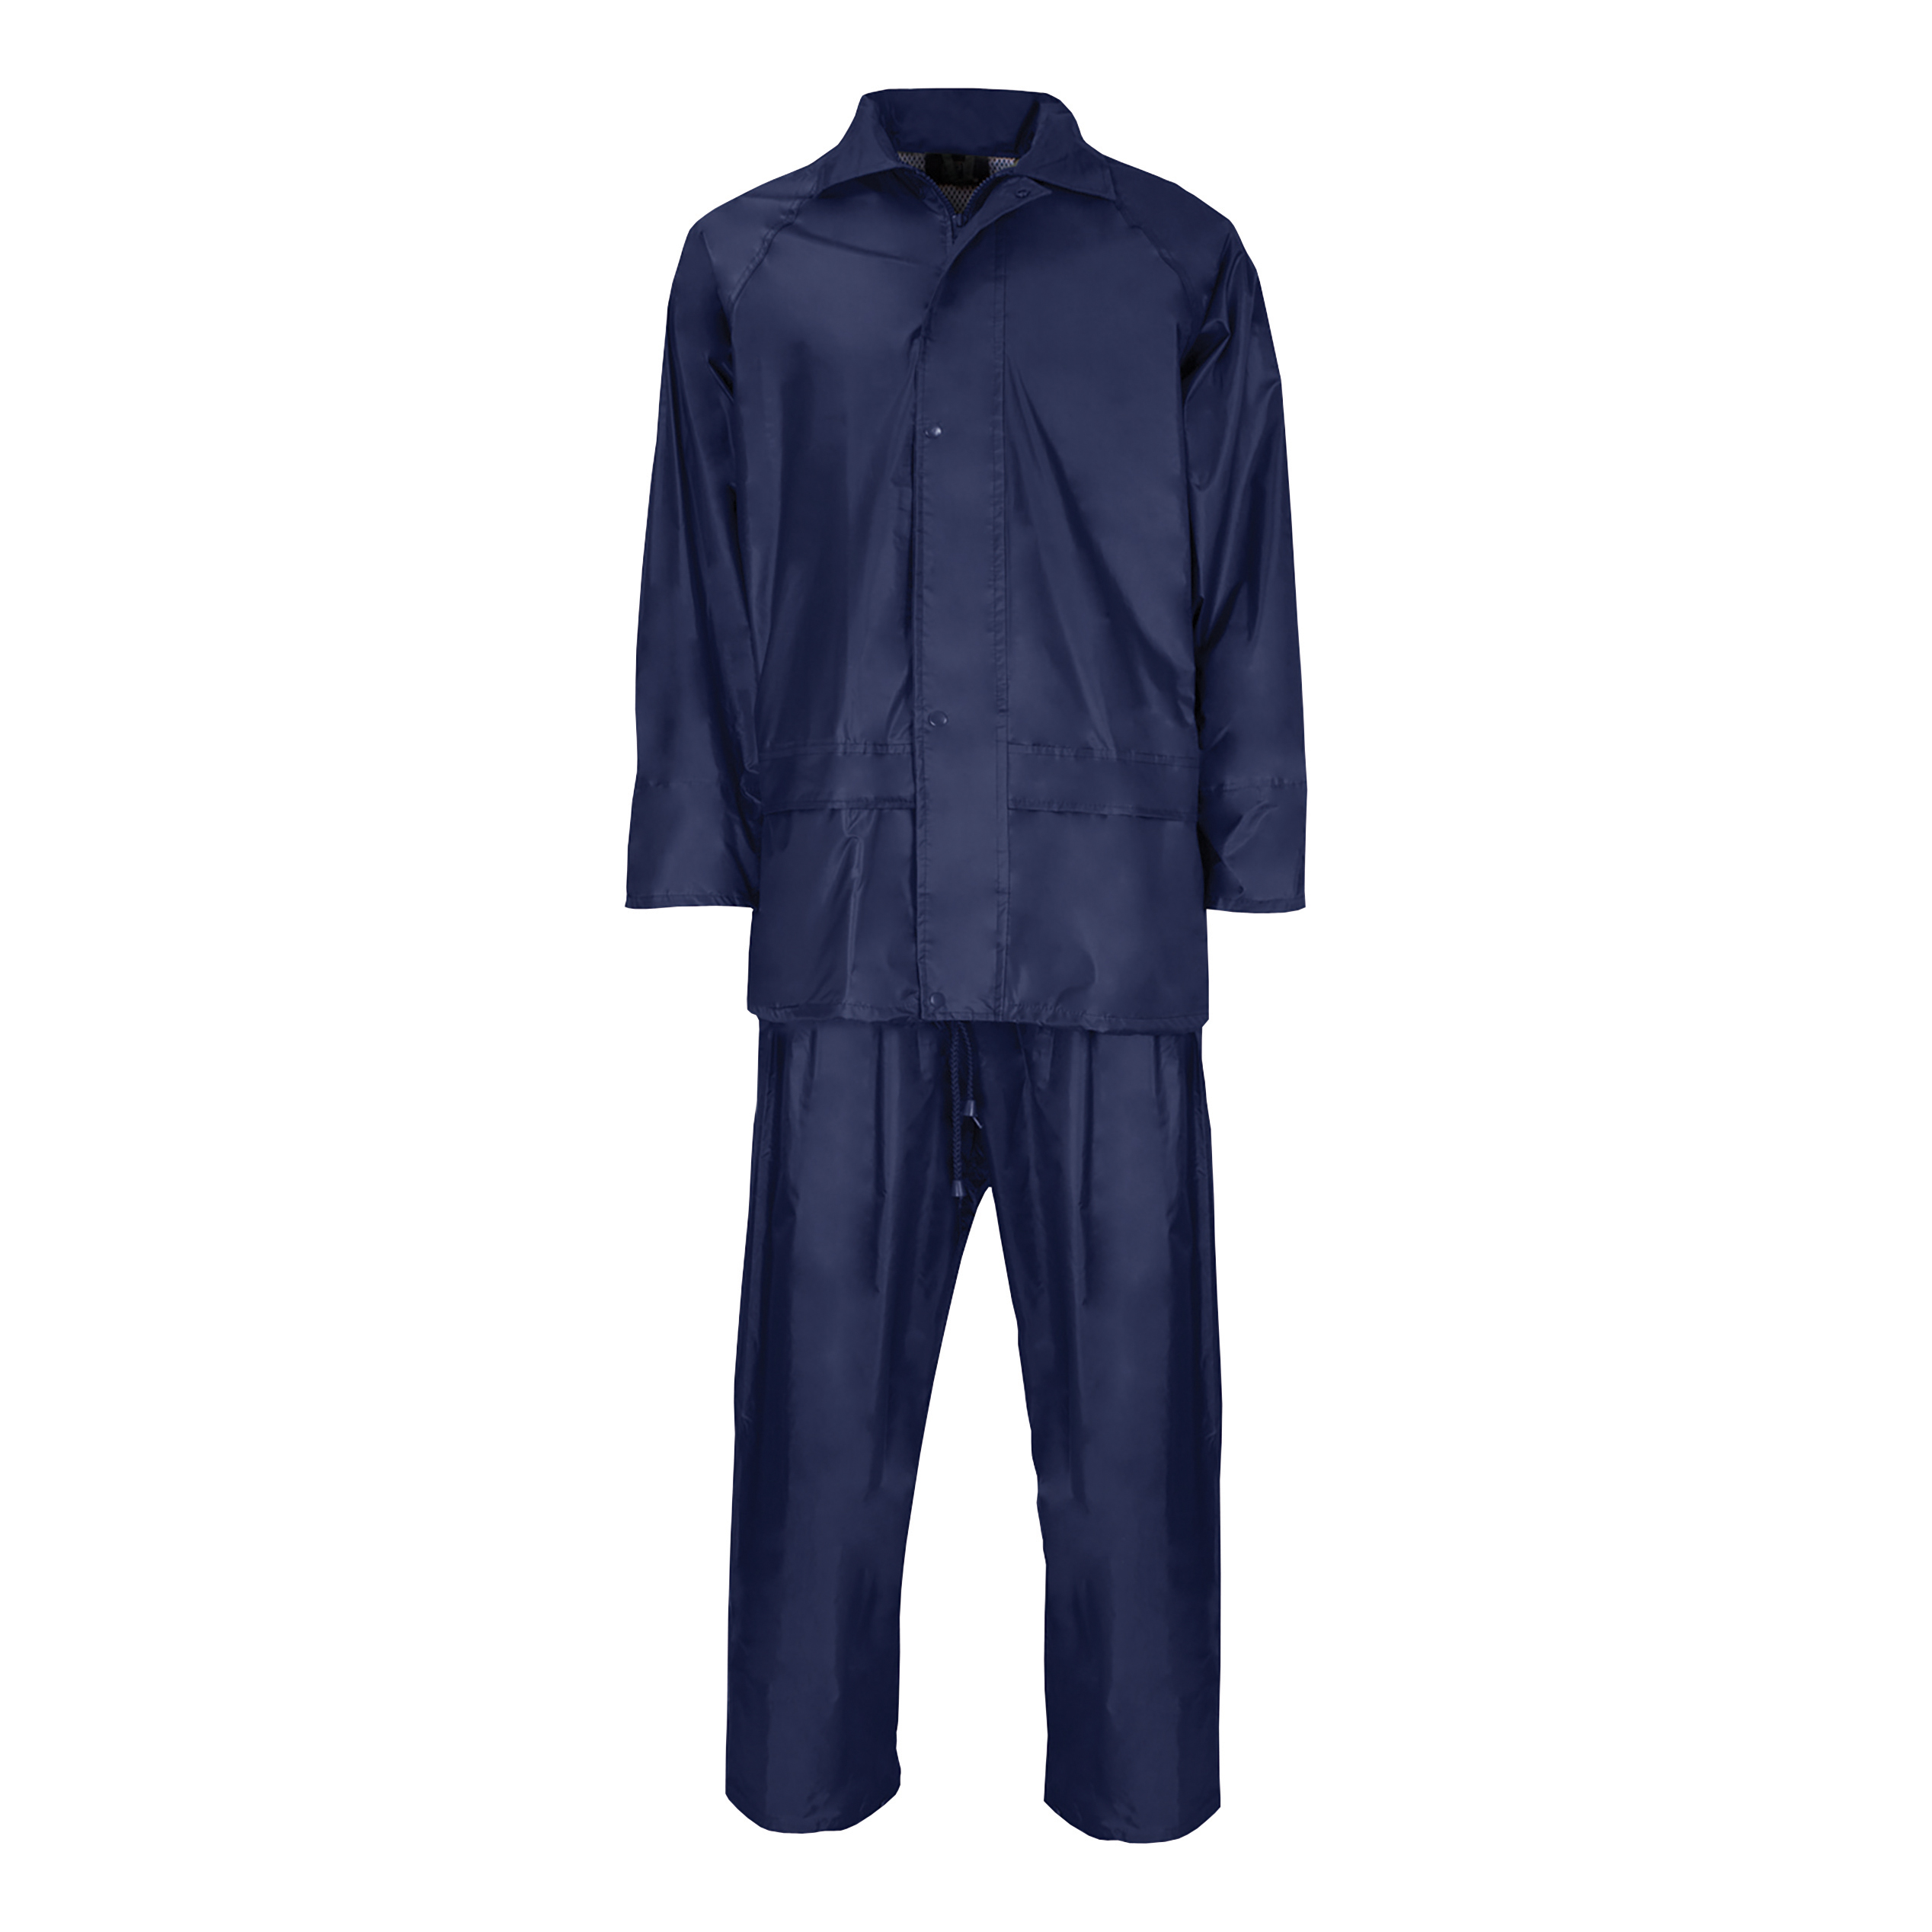 Rainsuit Polyester/PVC with Elasticated Waisted Trousers Small Navy Ref NBDSNS Approx 3 Day Leadtime